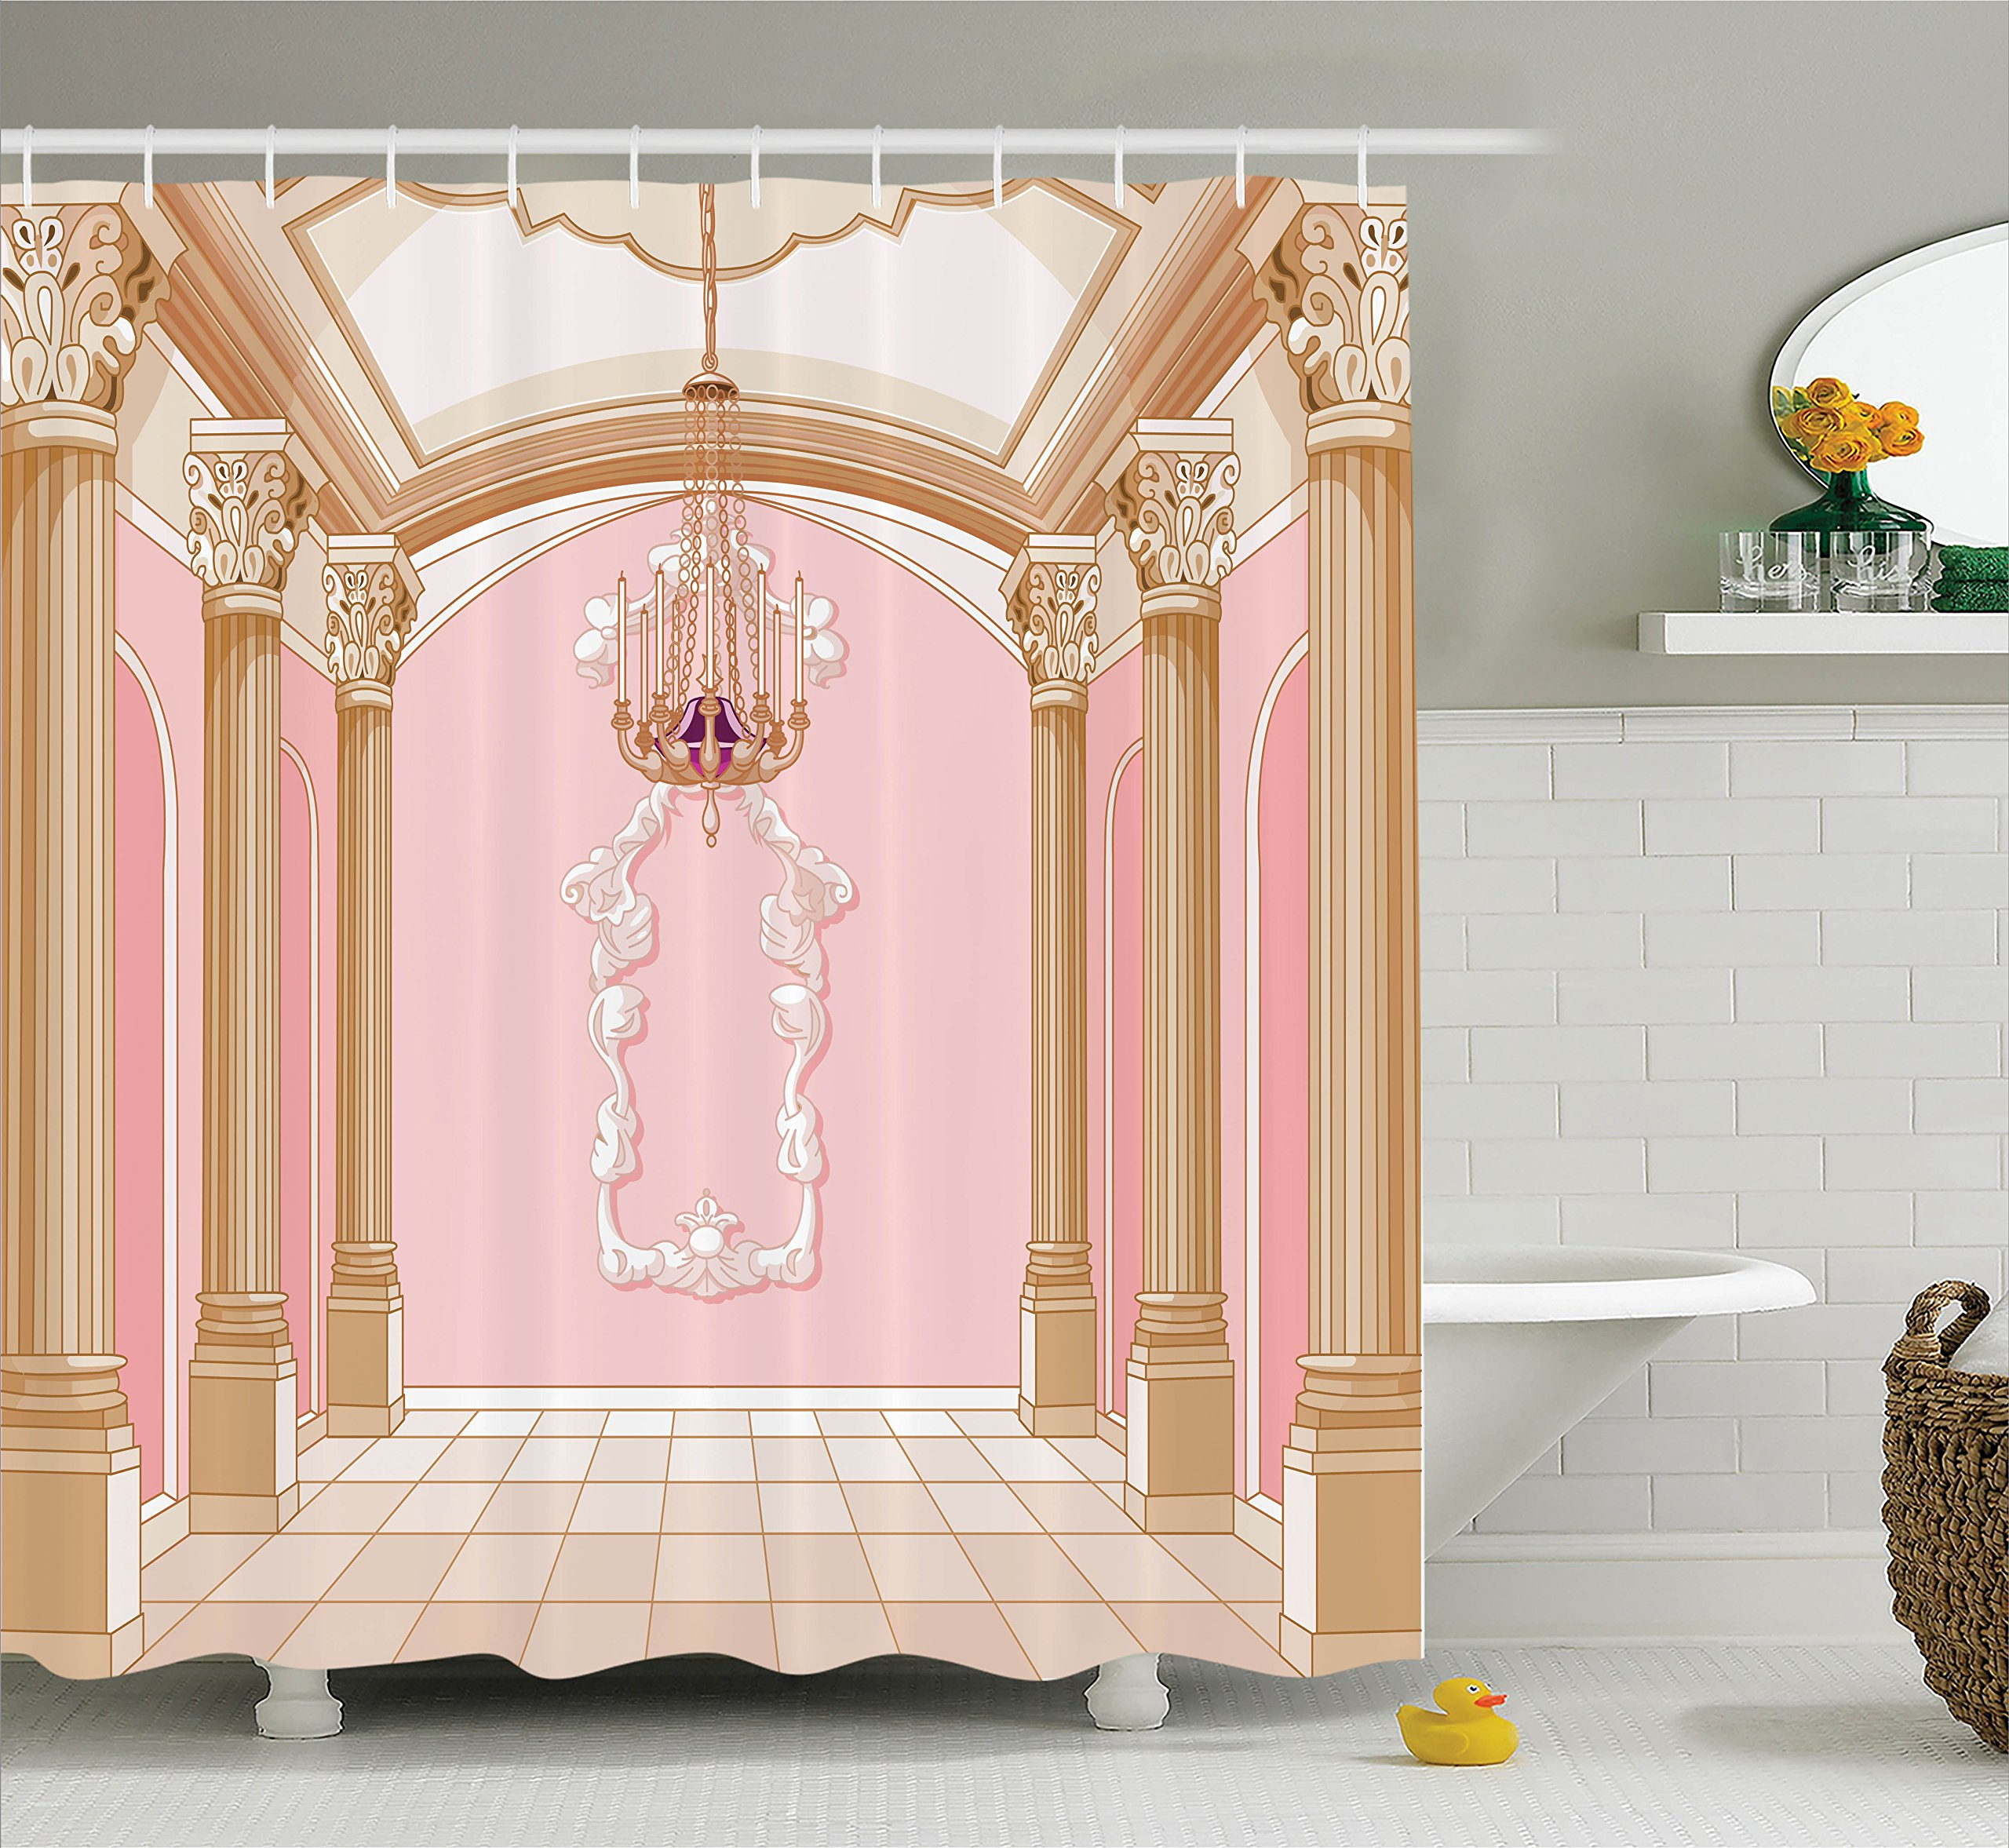 Ambesonne Teen Girls Decor Shower Curtain Set By, Interior Of The Ballroom Magic Castle Chandelier Ceiling Columns Kingdom Print, Bathroom Accessories, 75 Inches Long